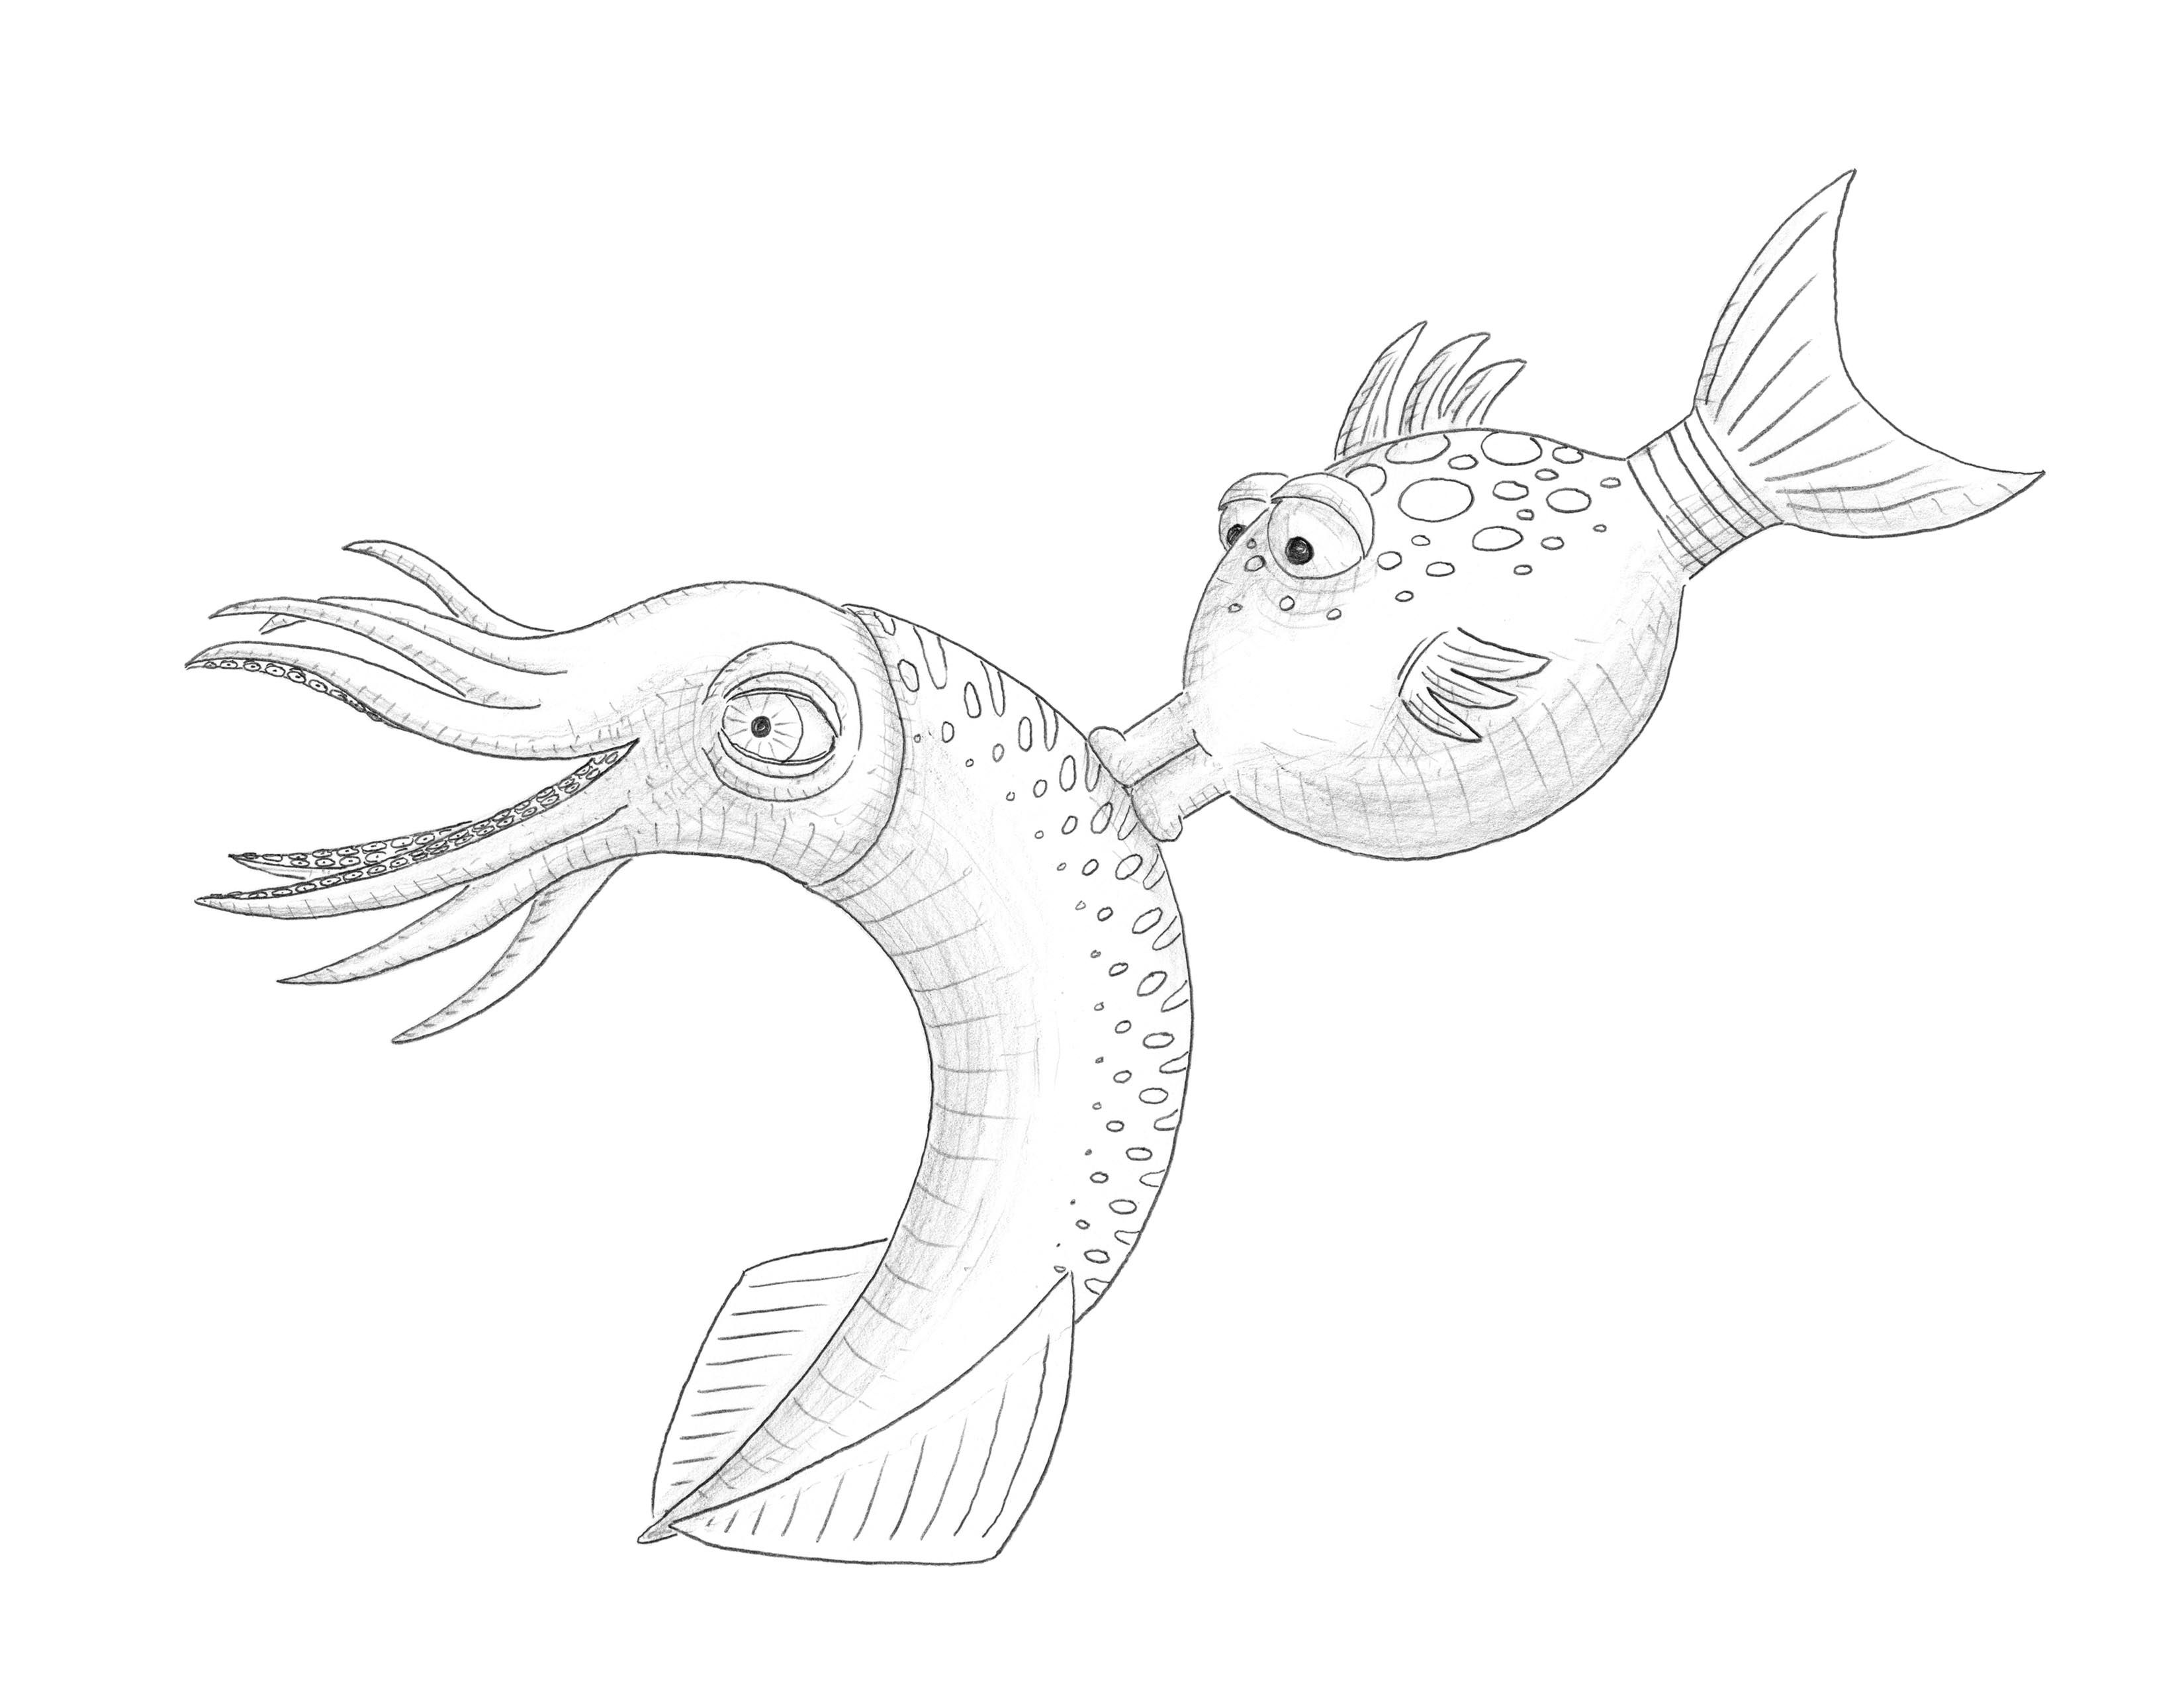 pout pout fish coloring page - pout pout fish coloring pages coloring home